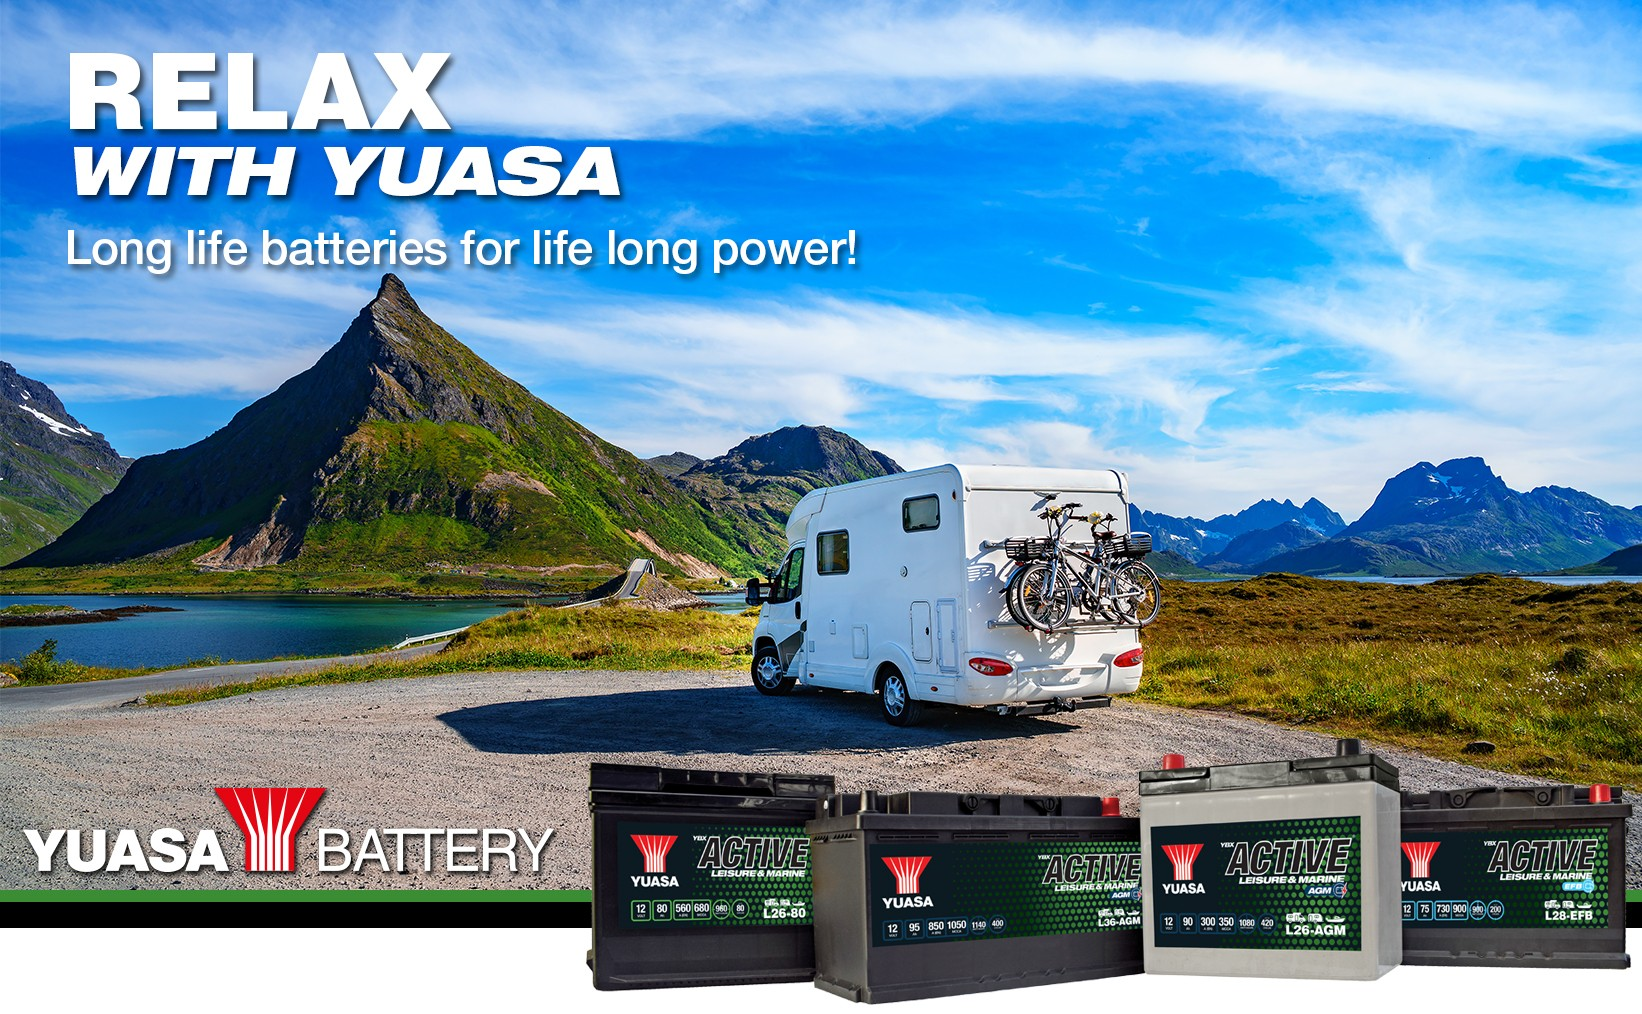 Long life batteries for life long power.